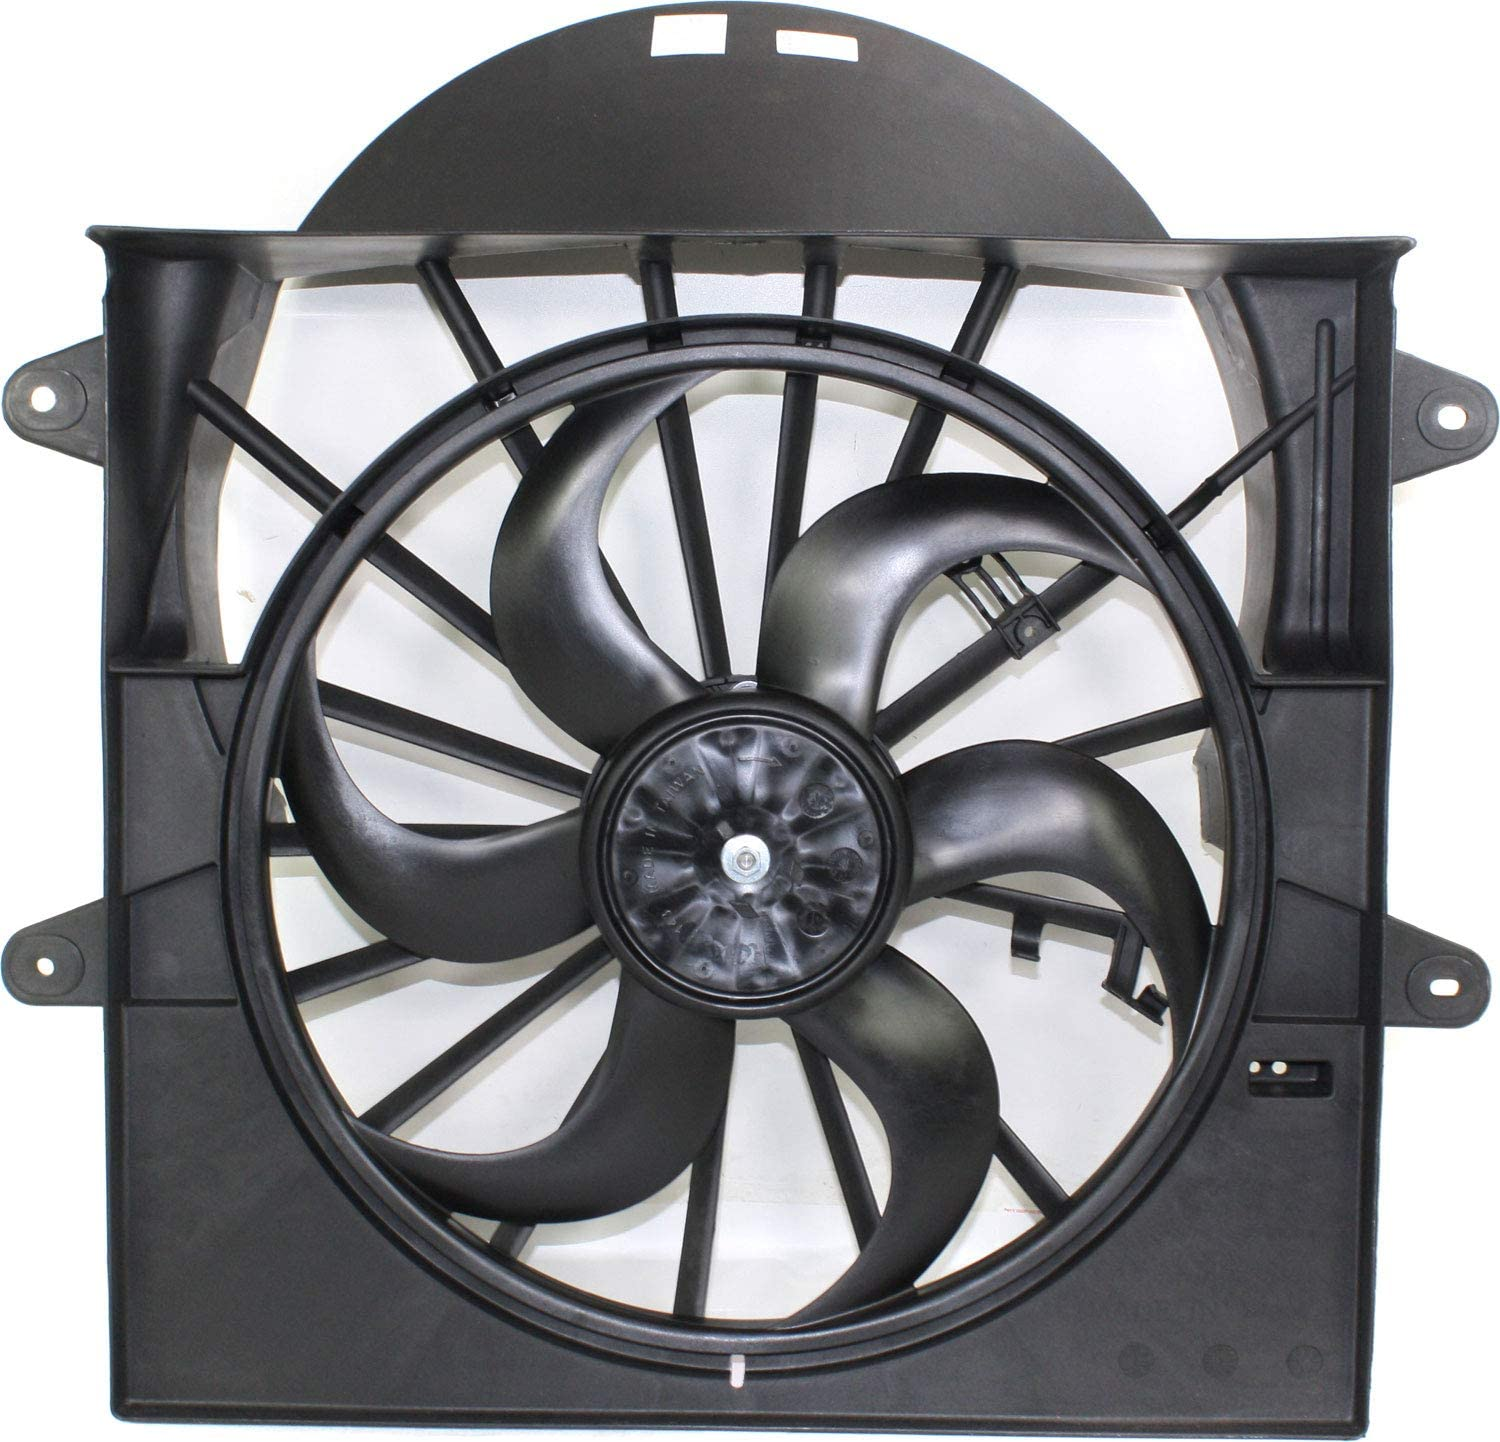 Cooling Fan Assembly Compatible with JEEP GRAND CHEROKEE 2005-2009 3.7L/4.7L Engine